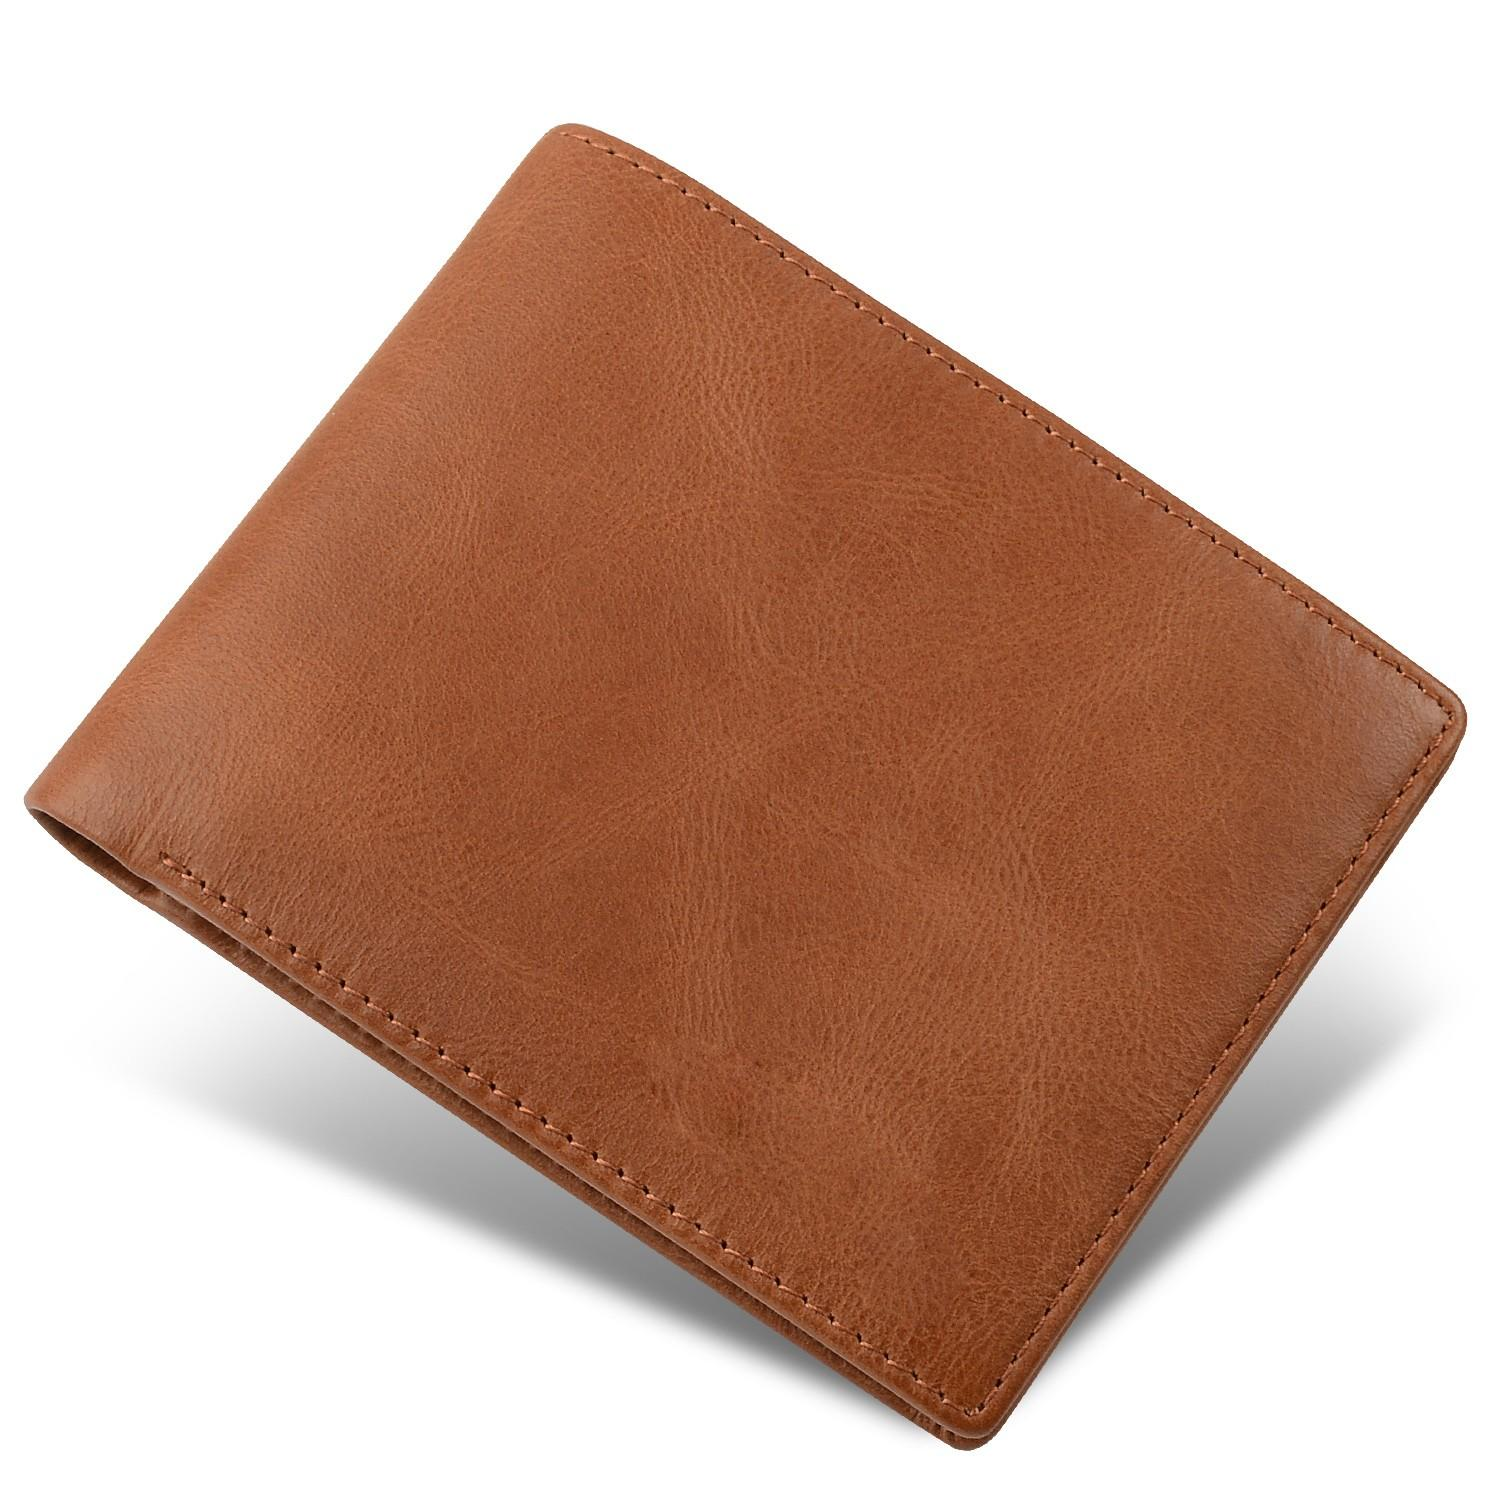 AIVI custom leather wallets for sale for travel-2